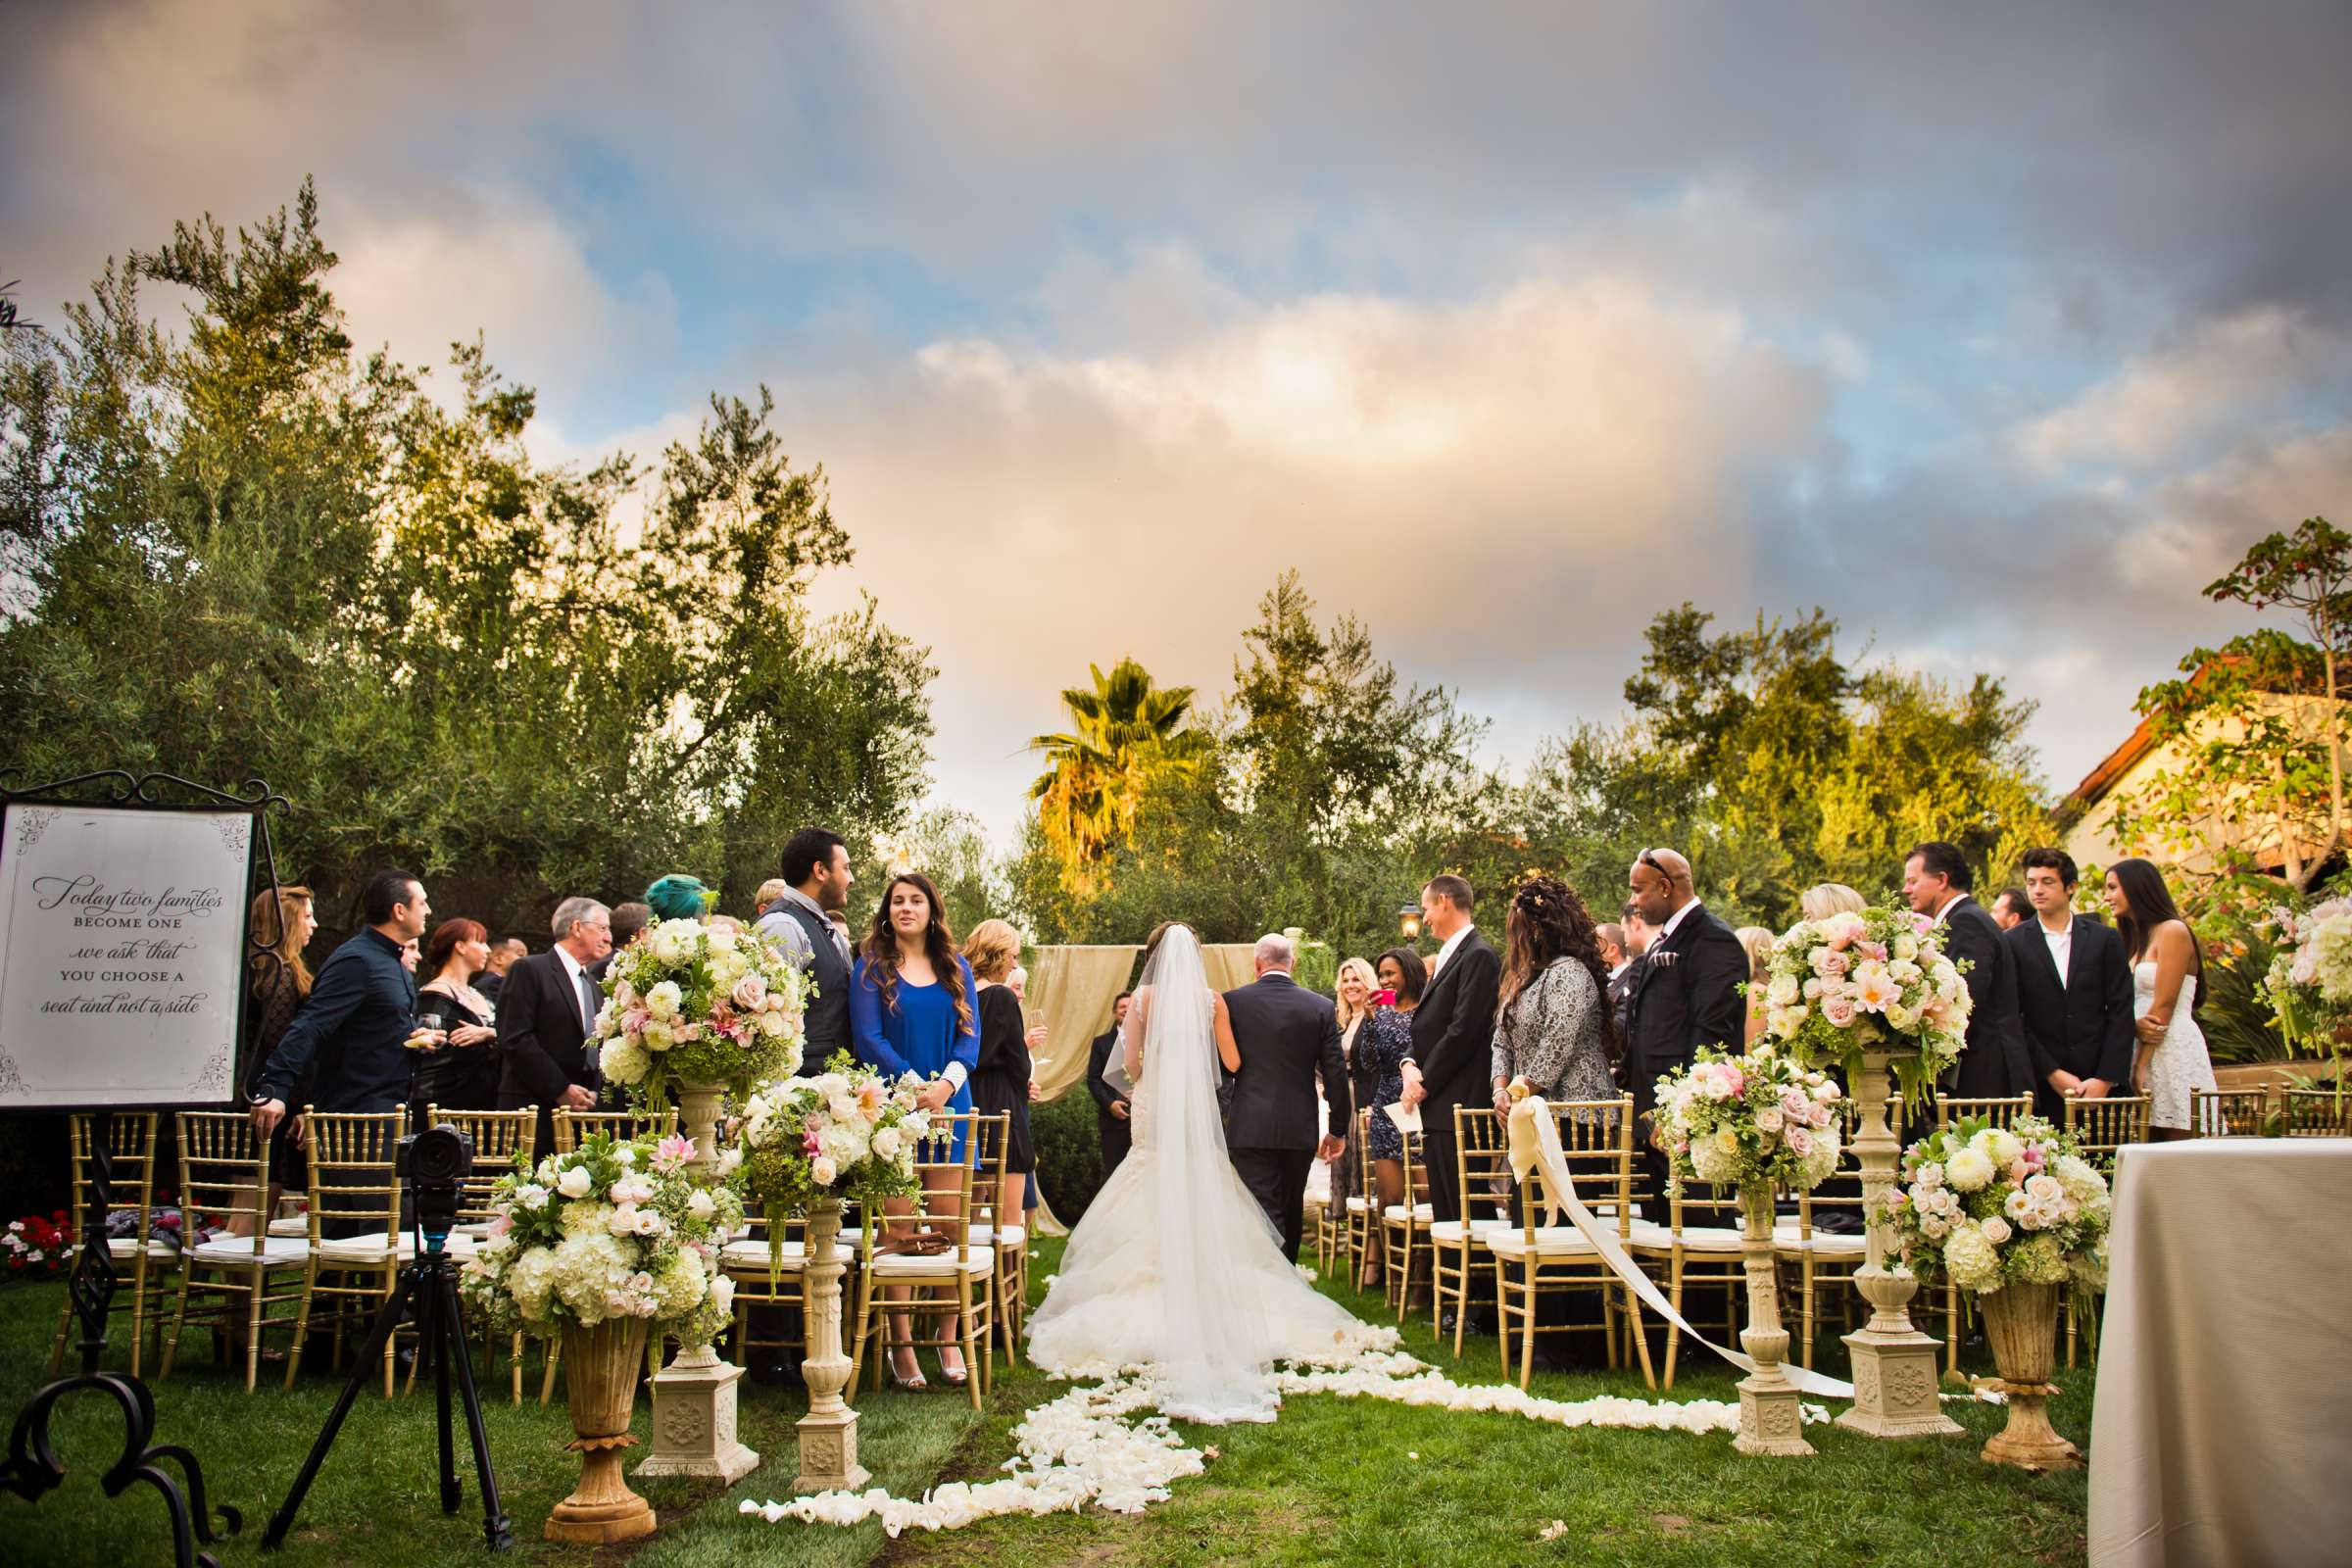 Estancia Wedding coordinated by EverAfter Events, Shaina and James Wedding Photo #140824 by True Photography